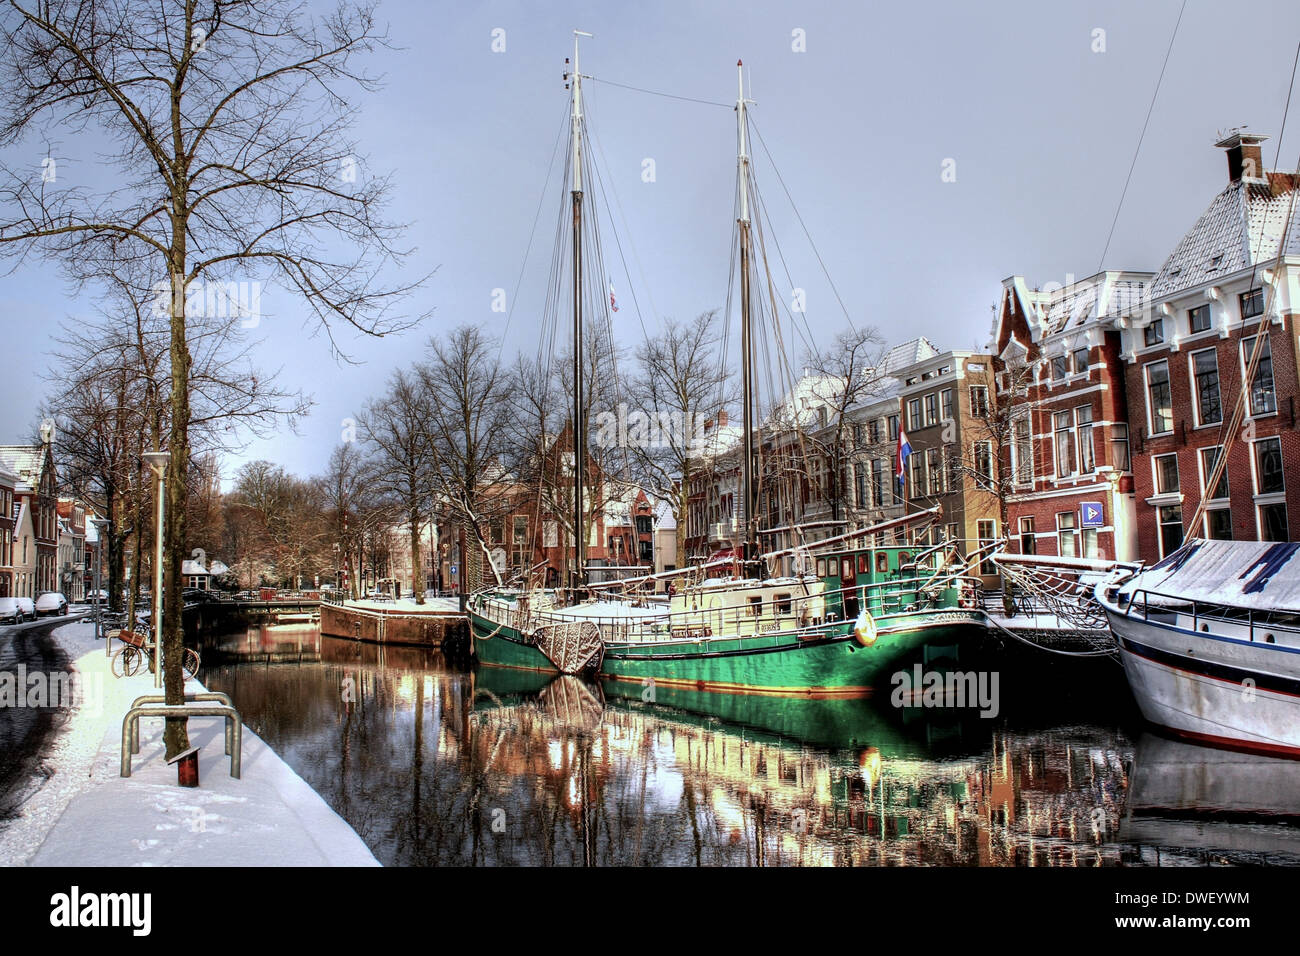 canal at hoge der a in groningen the netherlands in winter setting stock photo royalty free. Black Bedroom Furniture Sets. Home Design Ideas